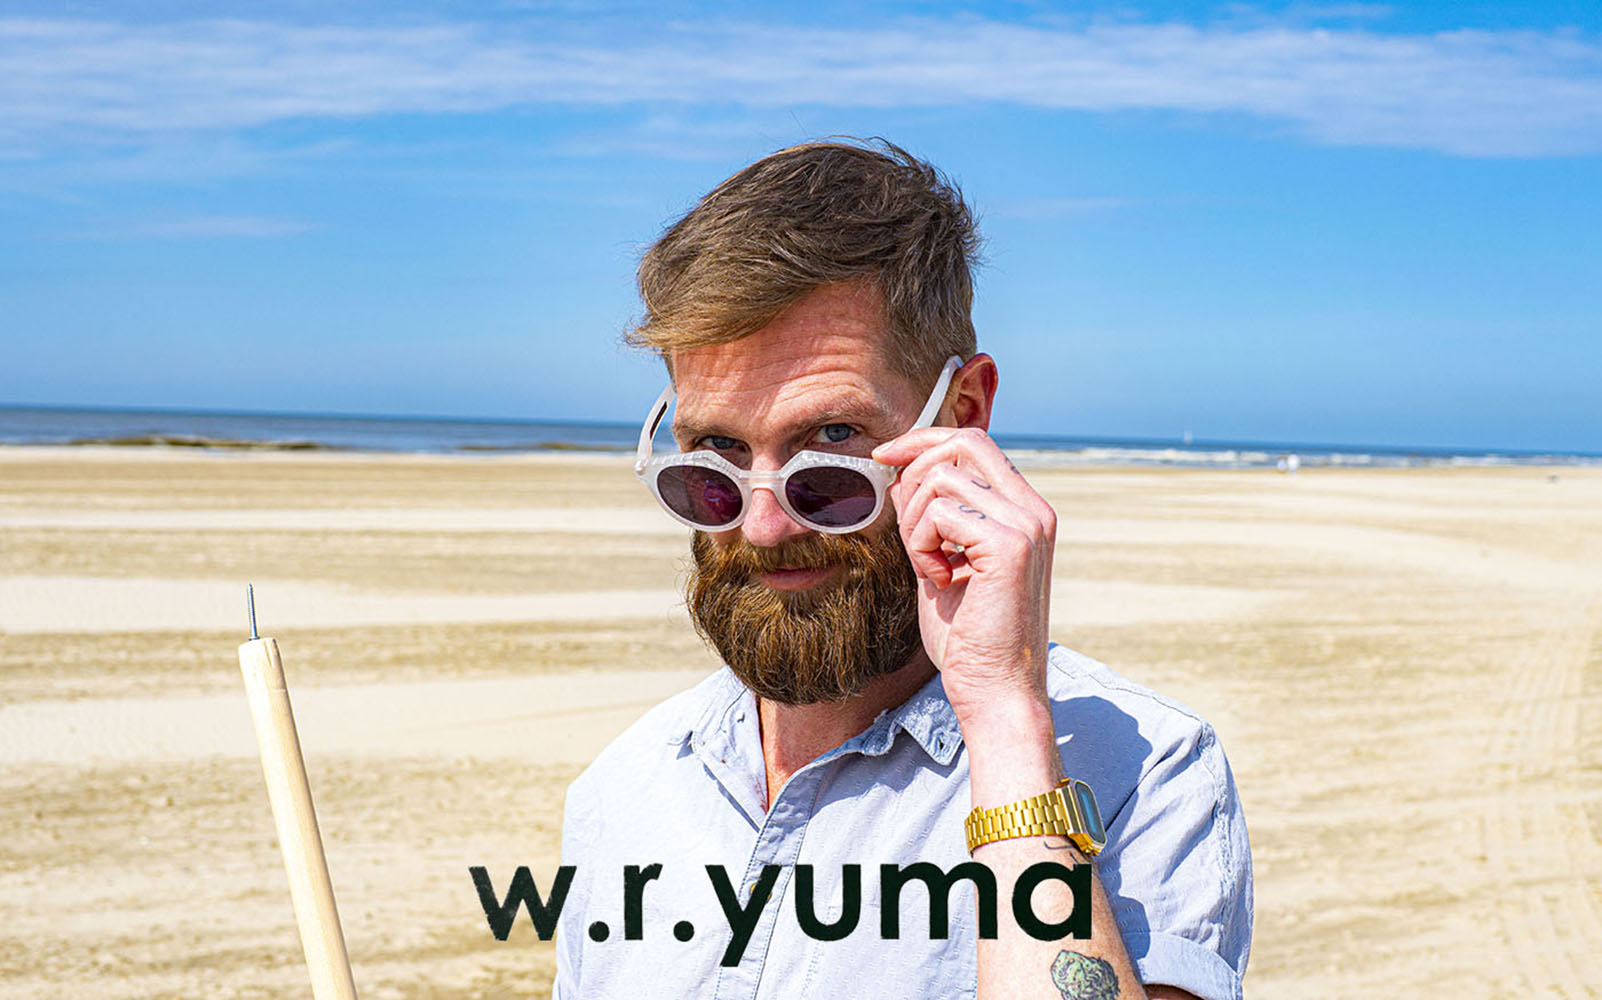 W.R.Yuma // Conversation starters that tell a better story